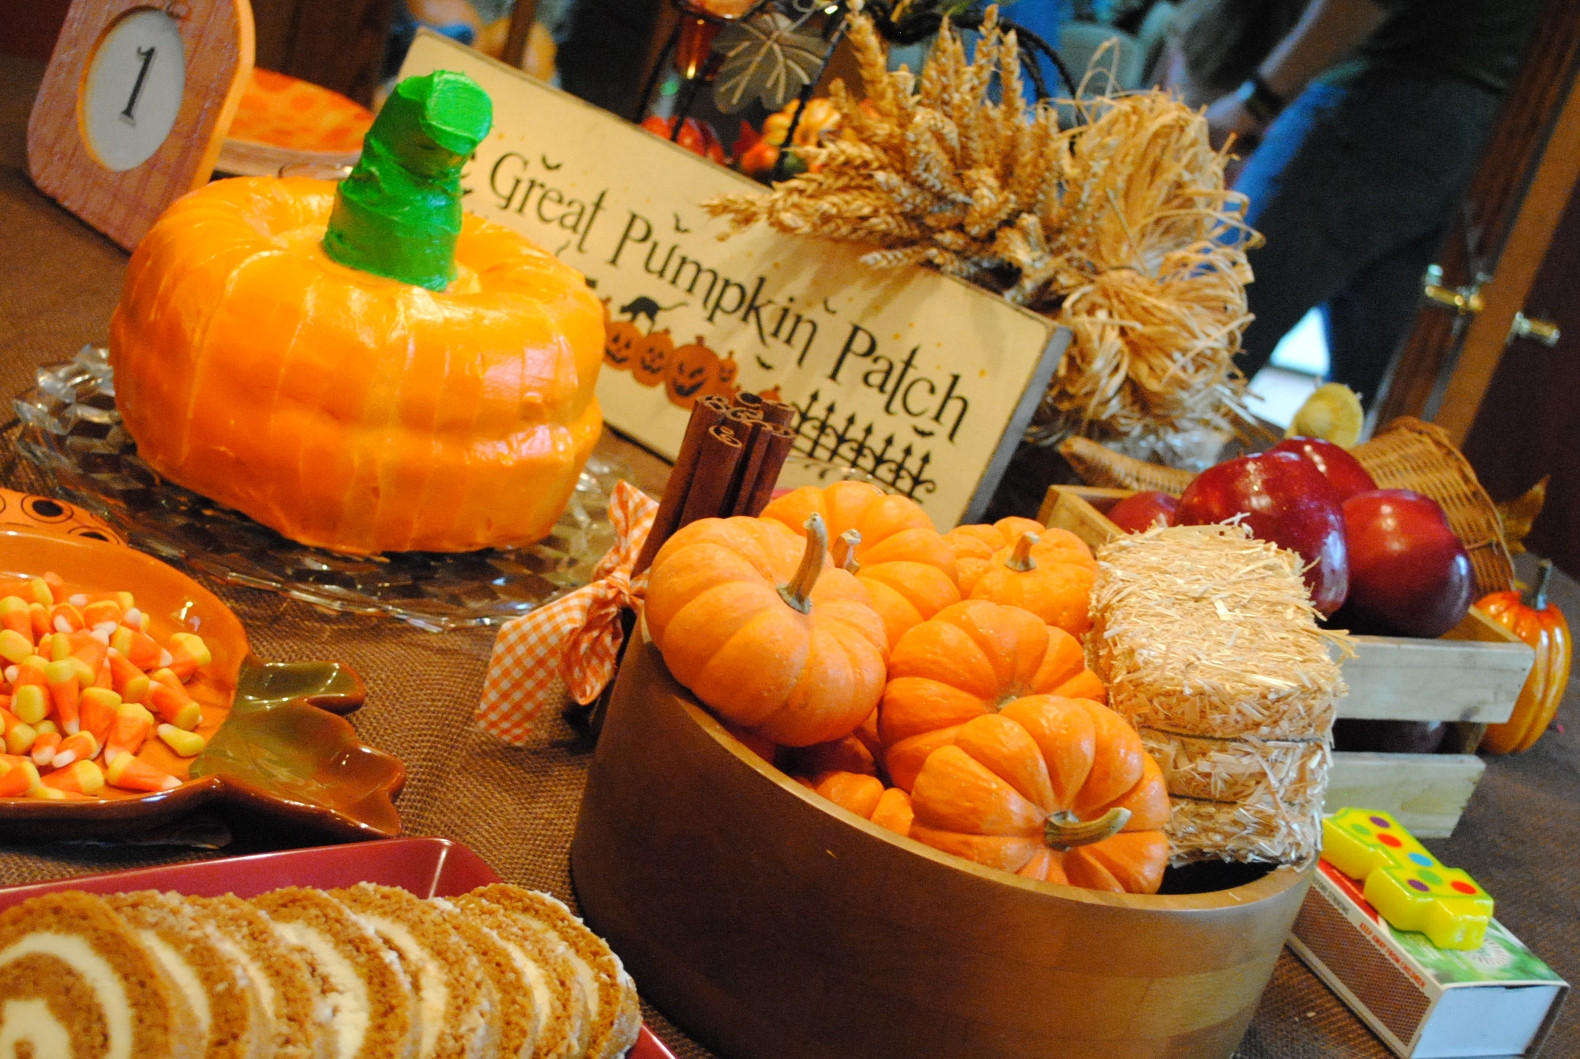 Best ideas about Pumpkin Patch Birthday Party . Save or Pin This Heavenly Life Messy Loud Always Worthwhile Now.